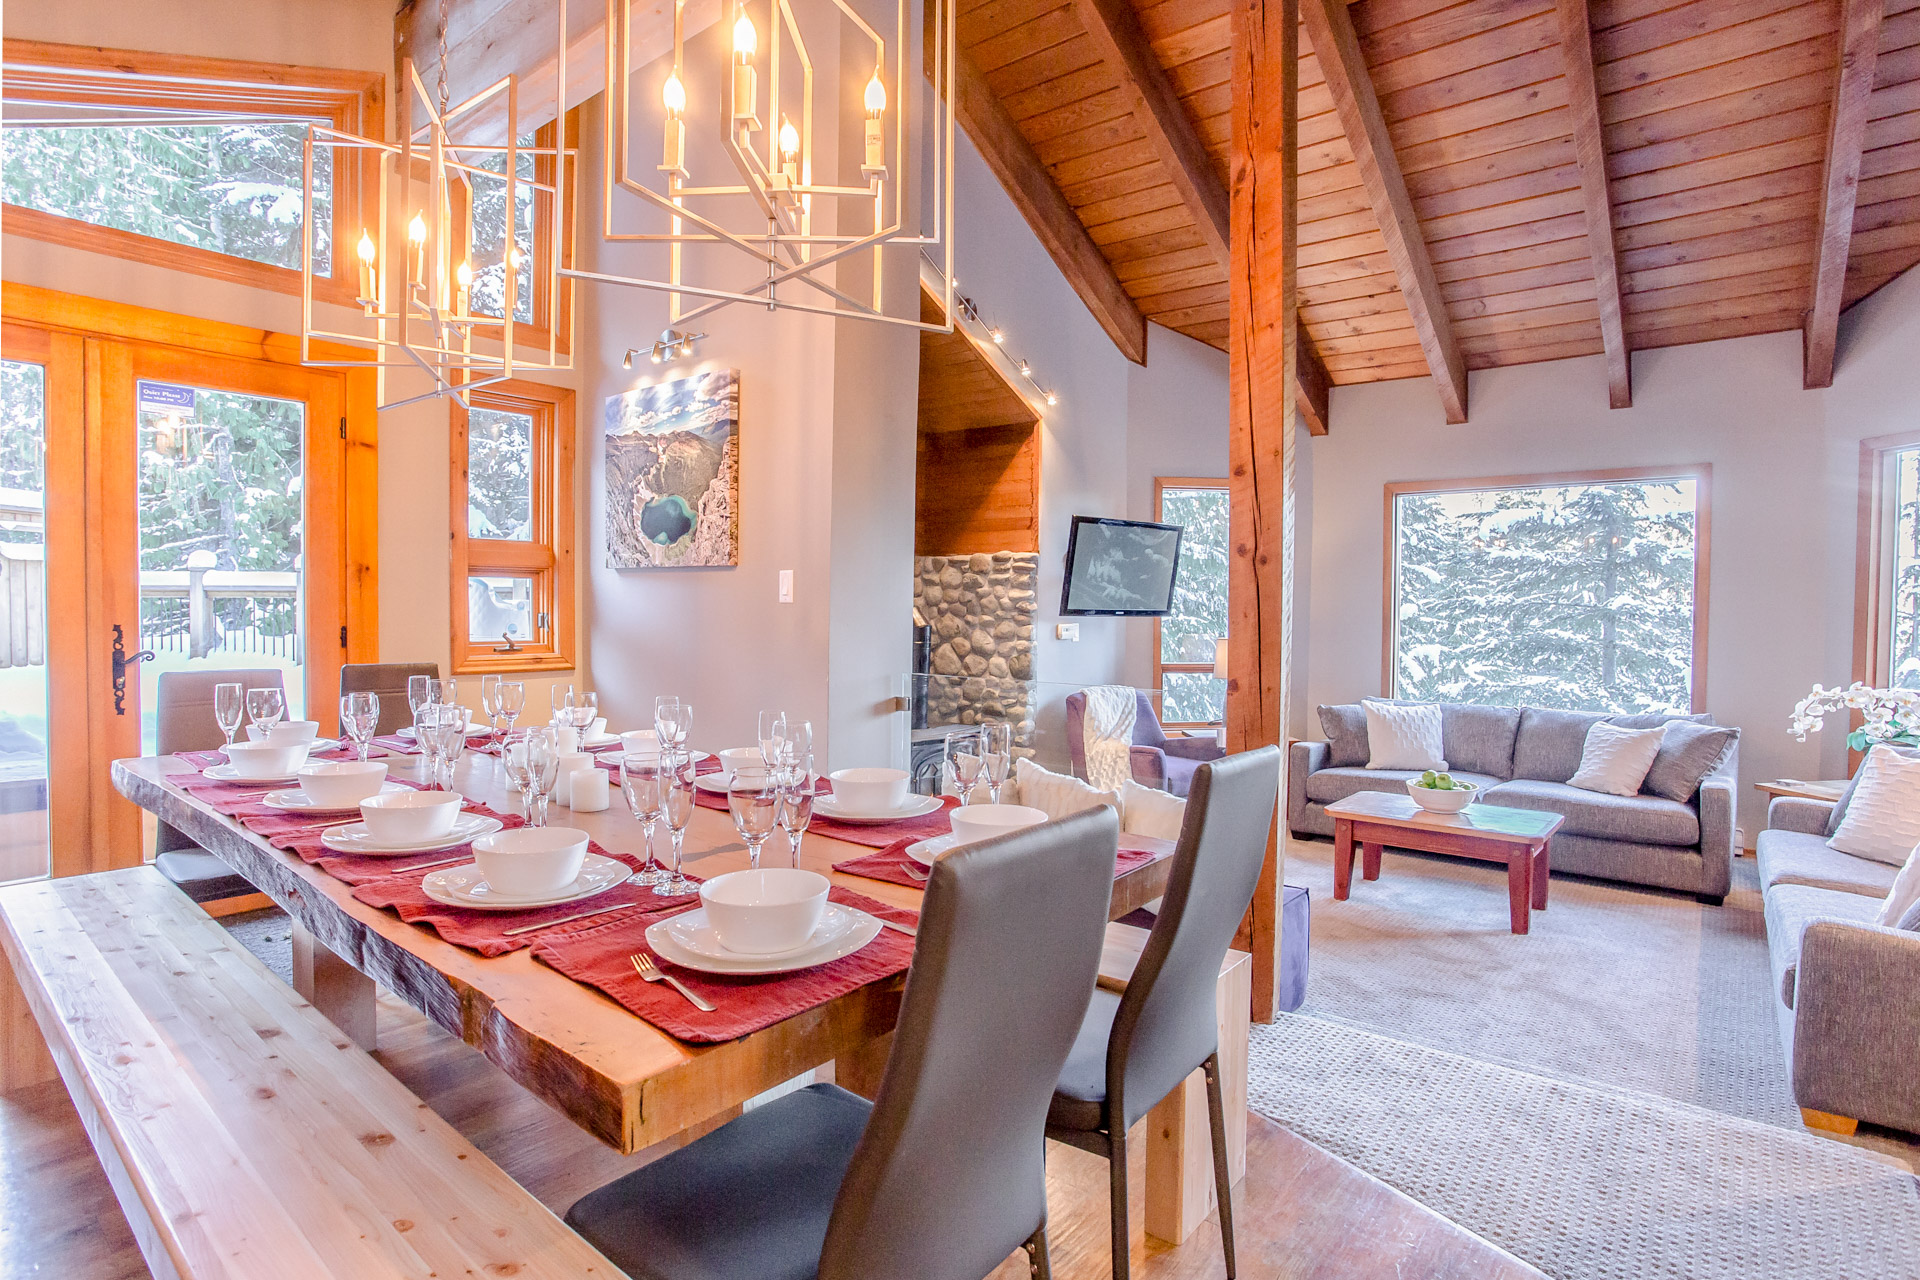 Copy of Aurora lodge - Dining Table